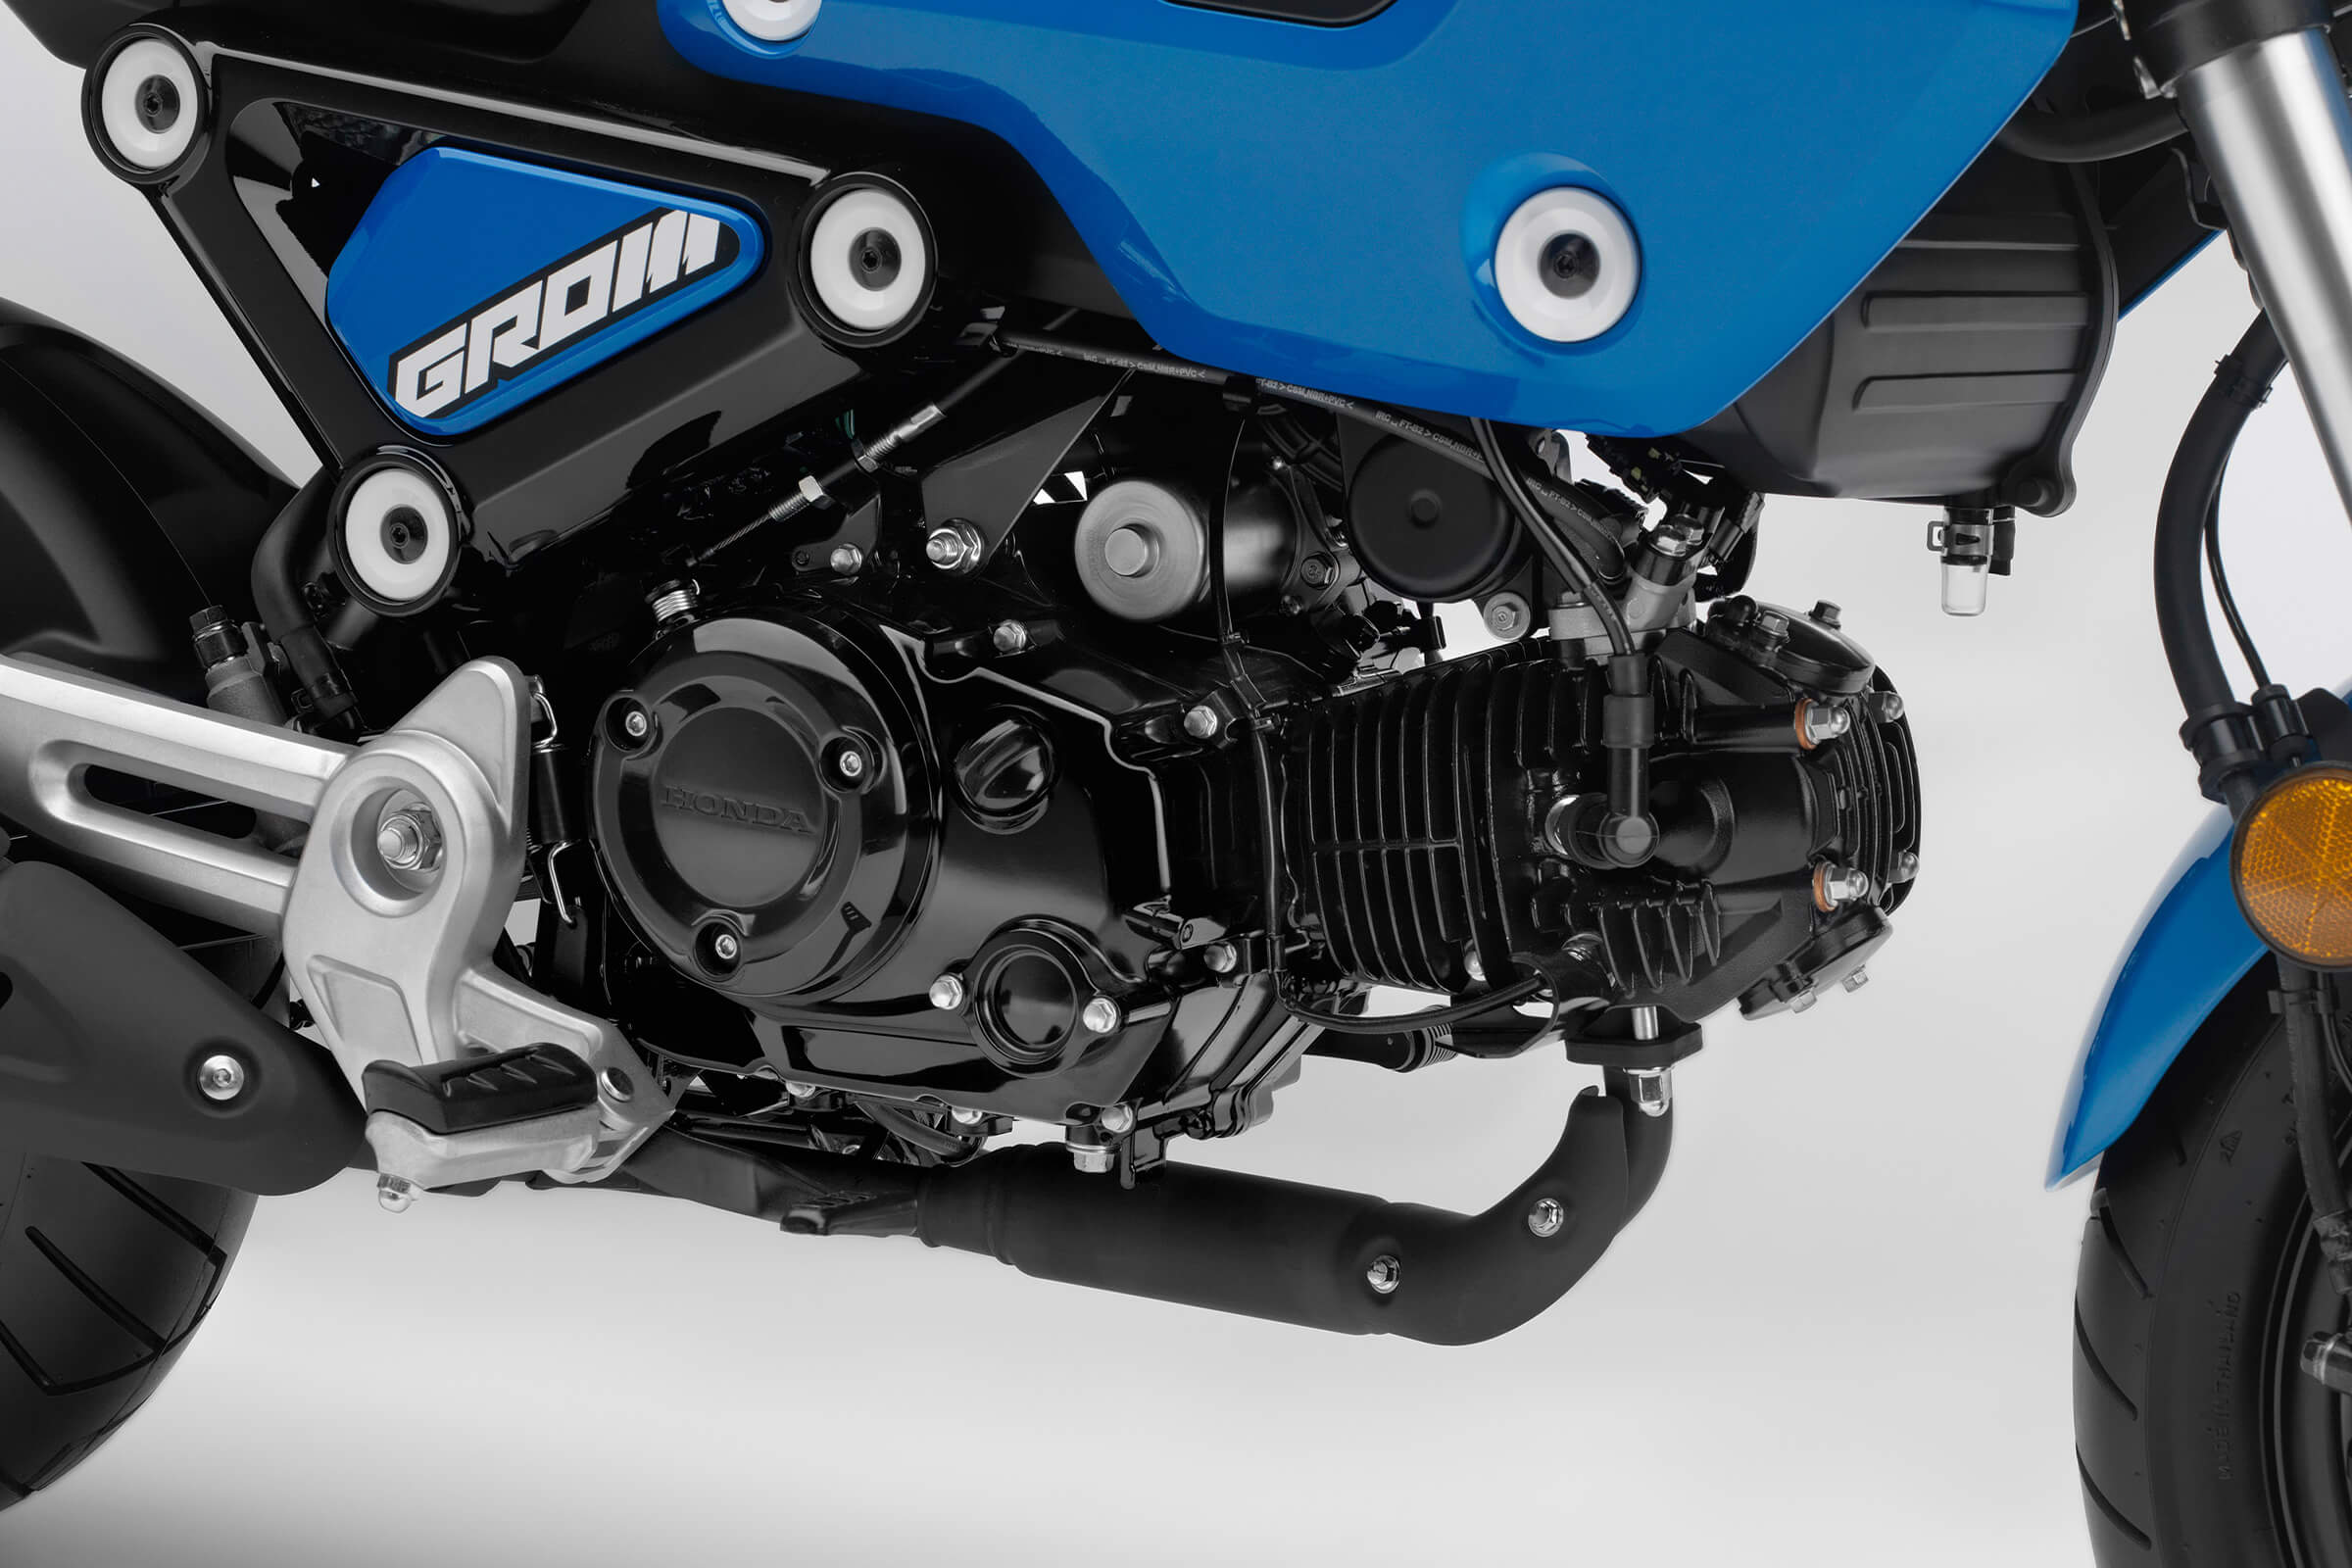 2021 Honda Grom Engine